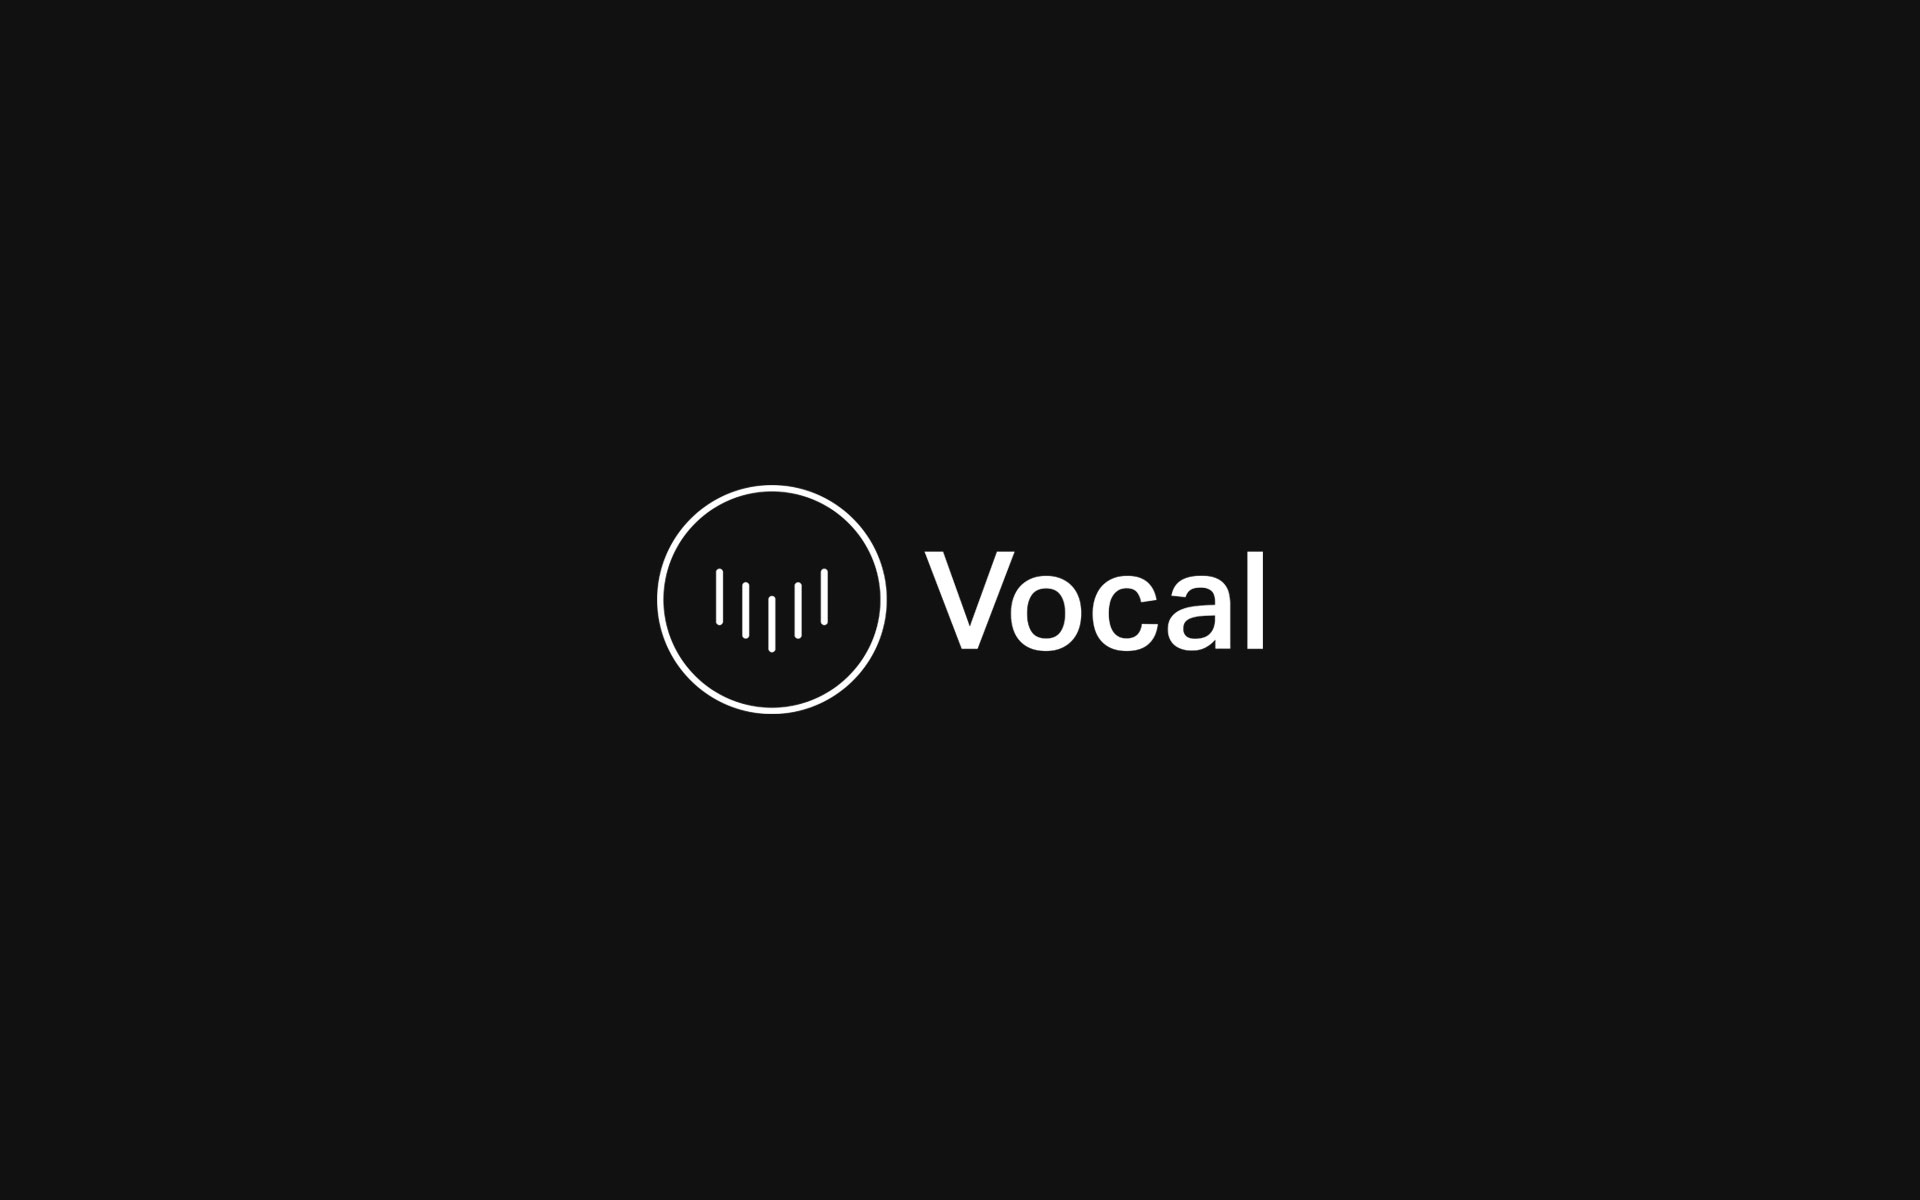 Edit your story on Vocal